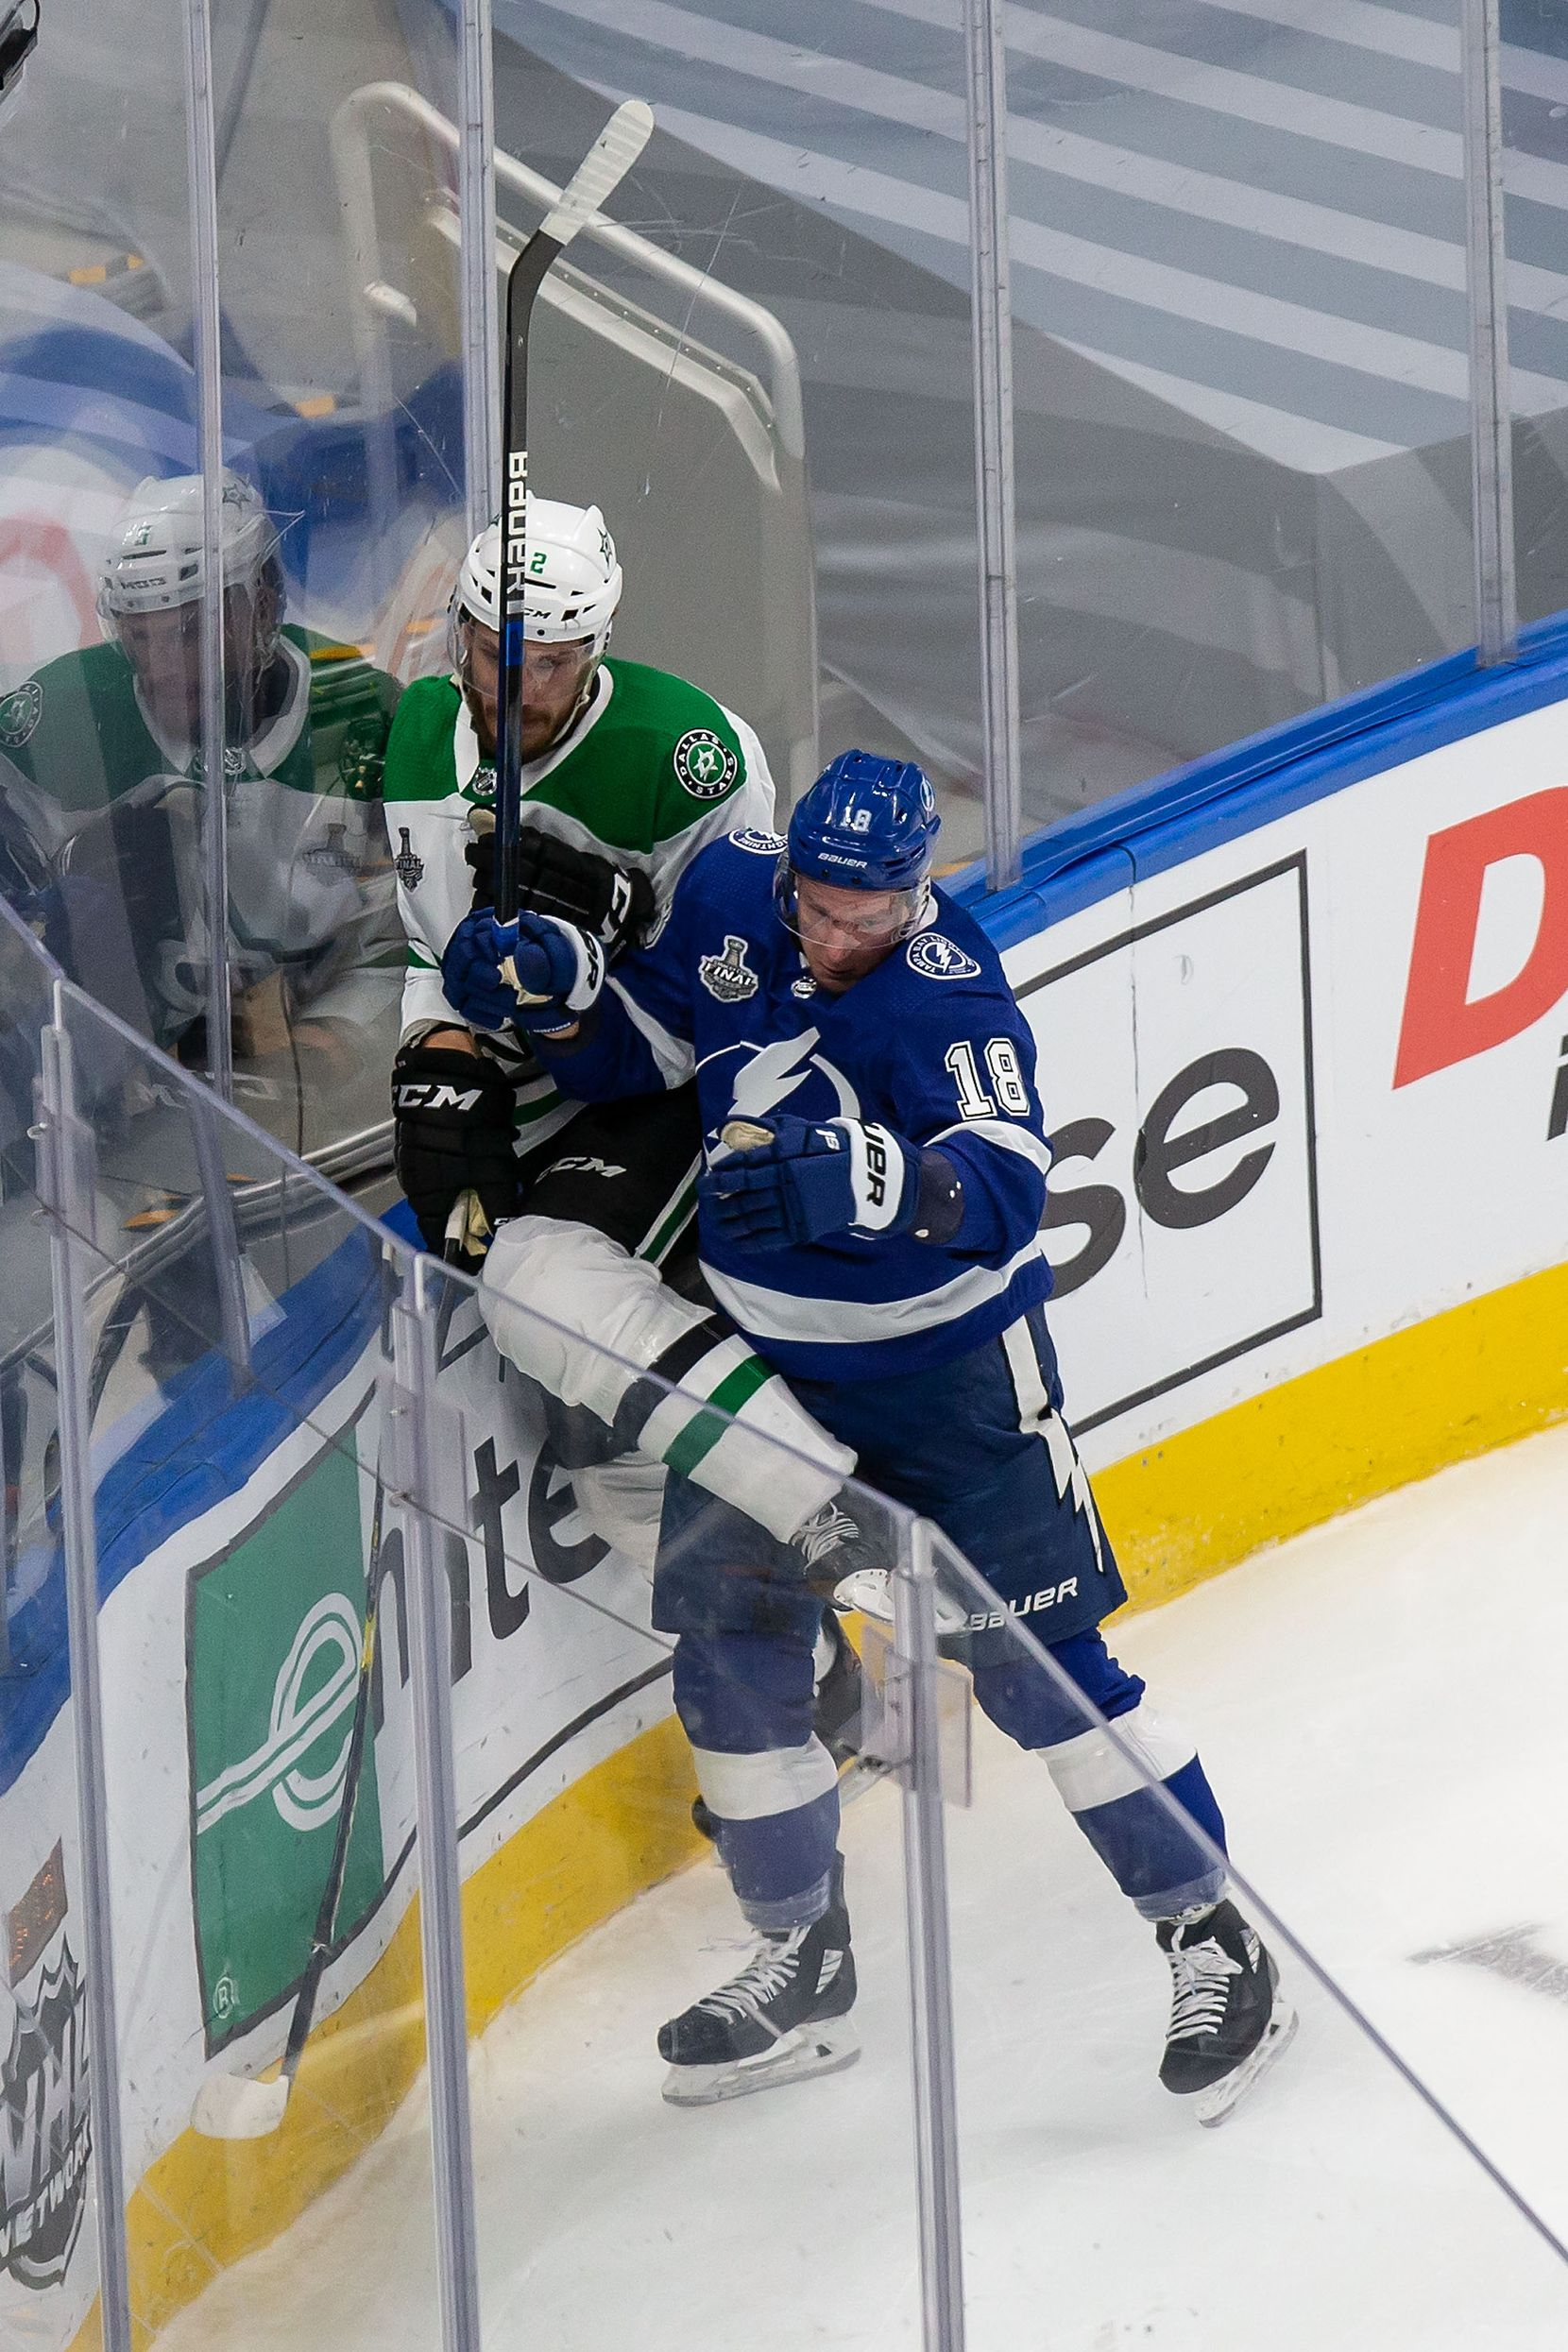 Jamie Oleksiak (2) of the Dallas Stars is hit by Ondrej Palat (18) of the Tampa Bay Lightning during Game Two of the Stanley Cup Final at Rogers Place in Edmonton, Alberta, Canada on Monday, September 21, 2020. (Codie McLachlan/Special Contributor)